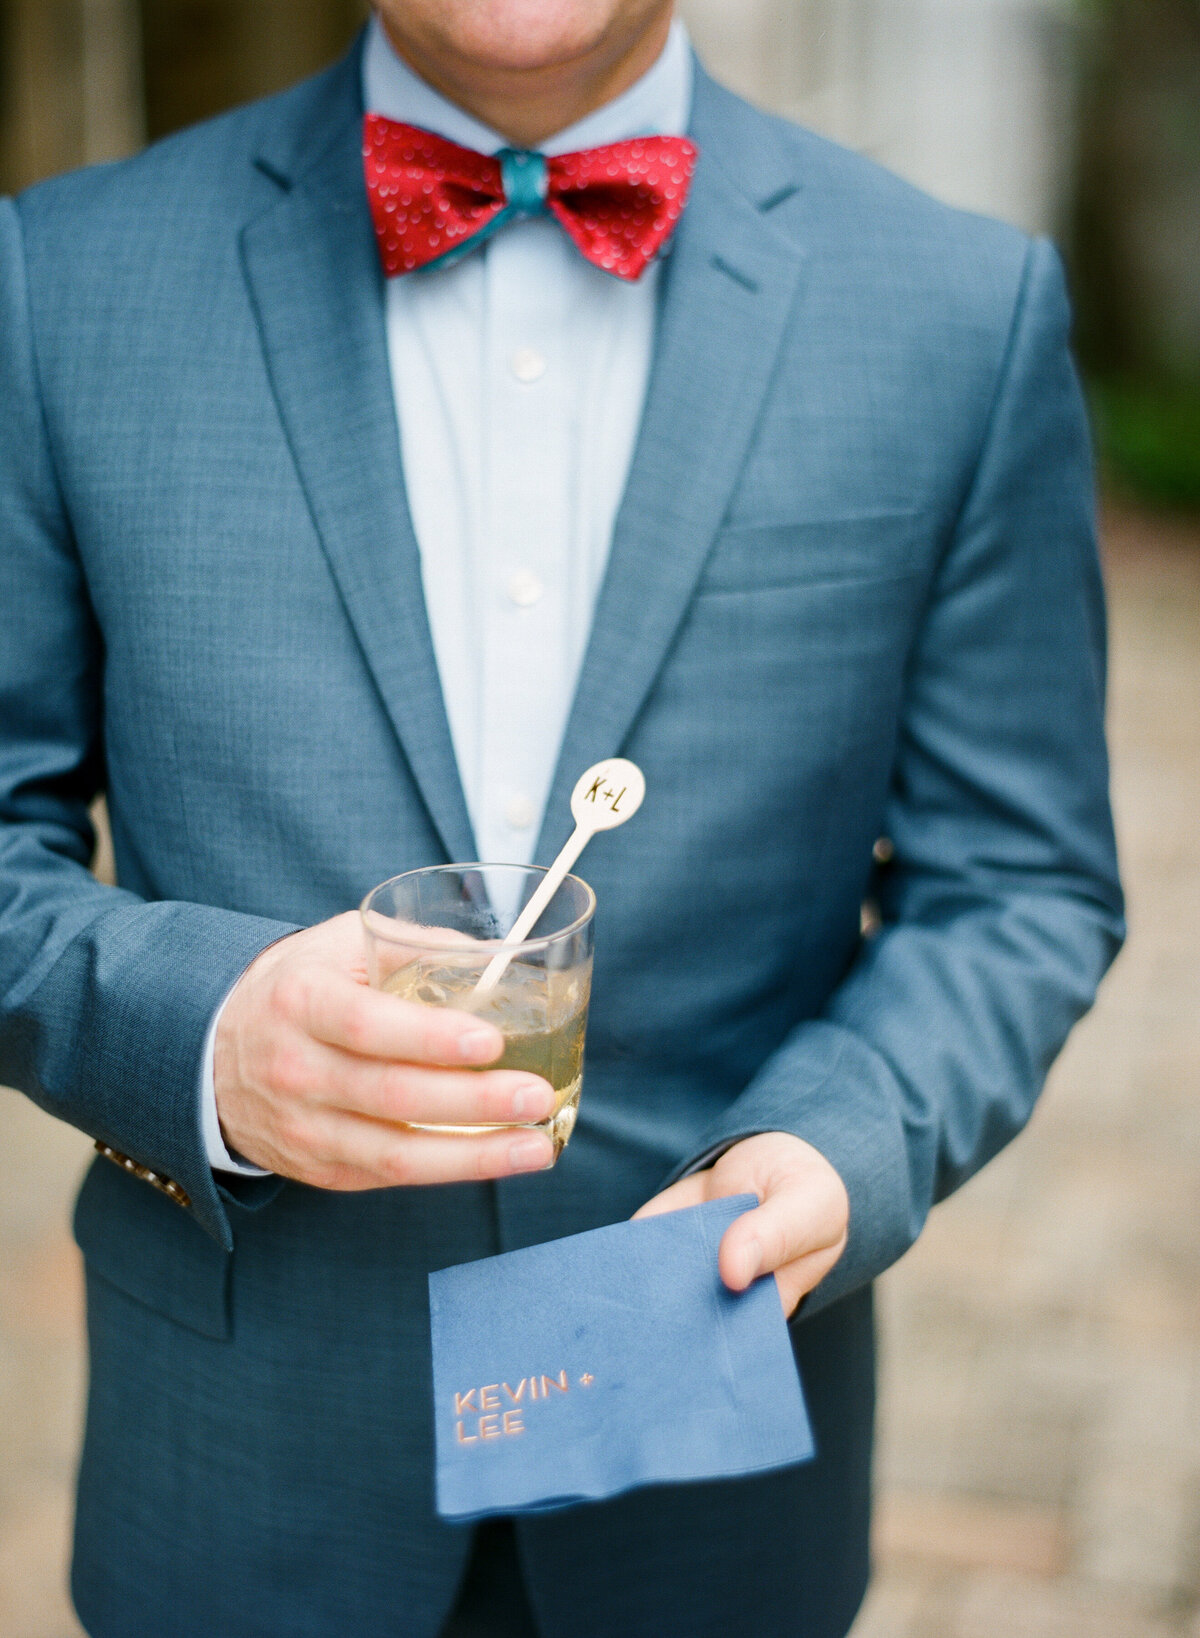 Wedding cocktail napkin